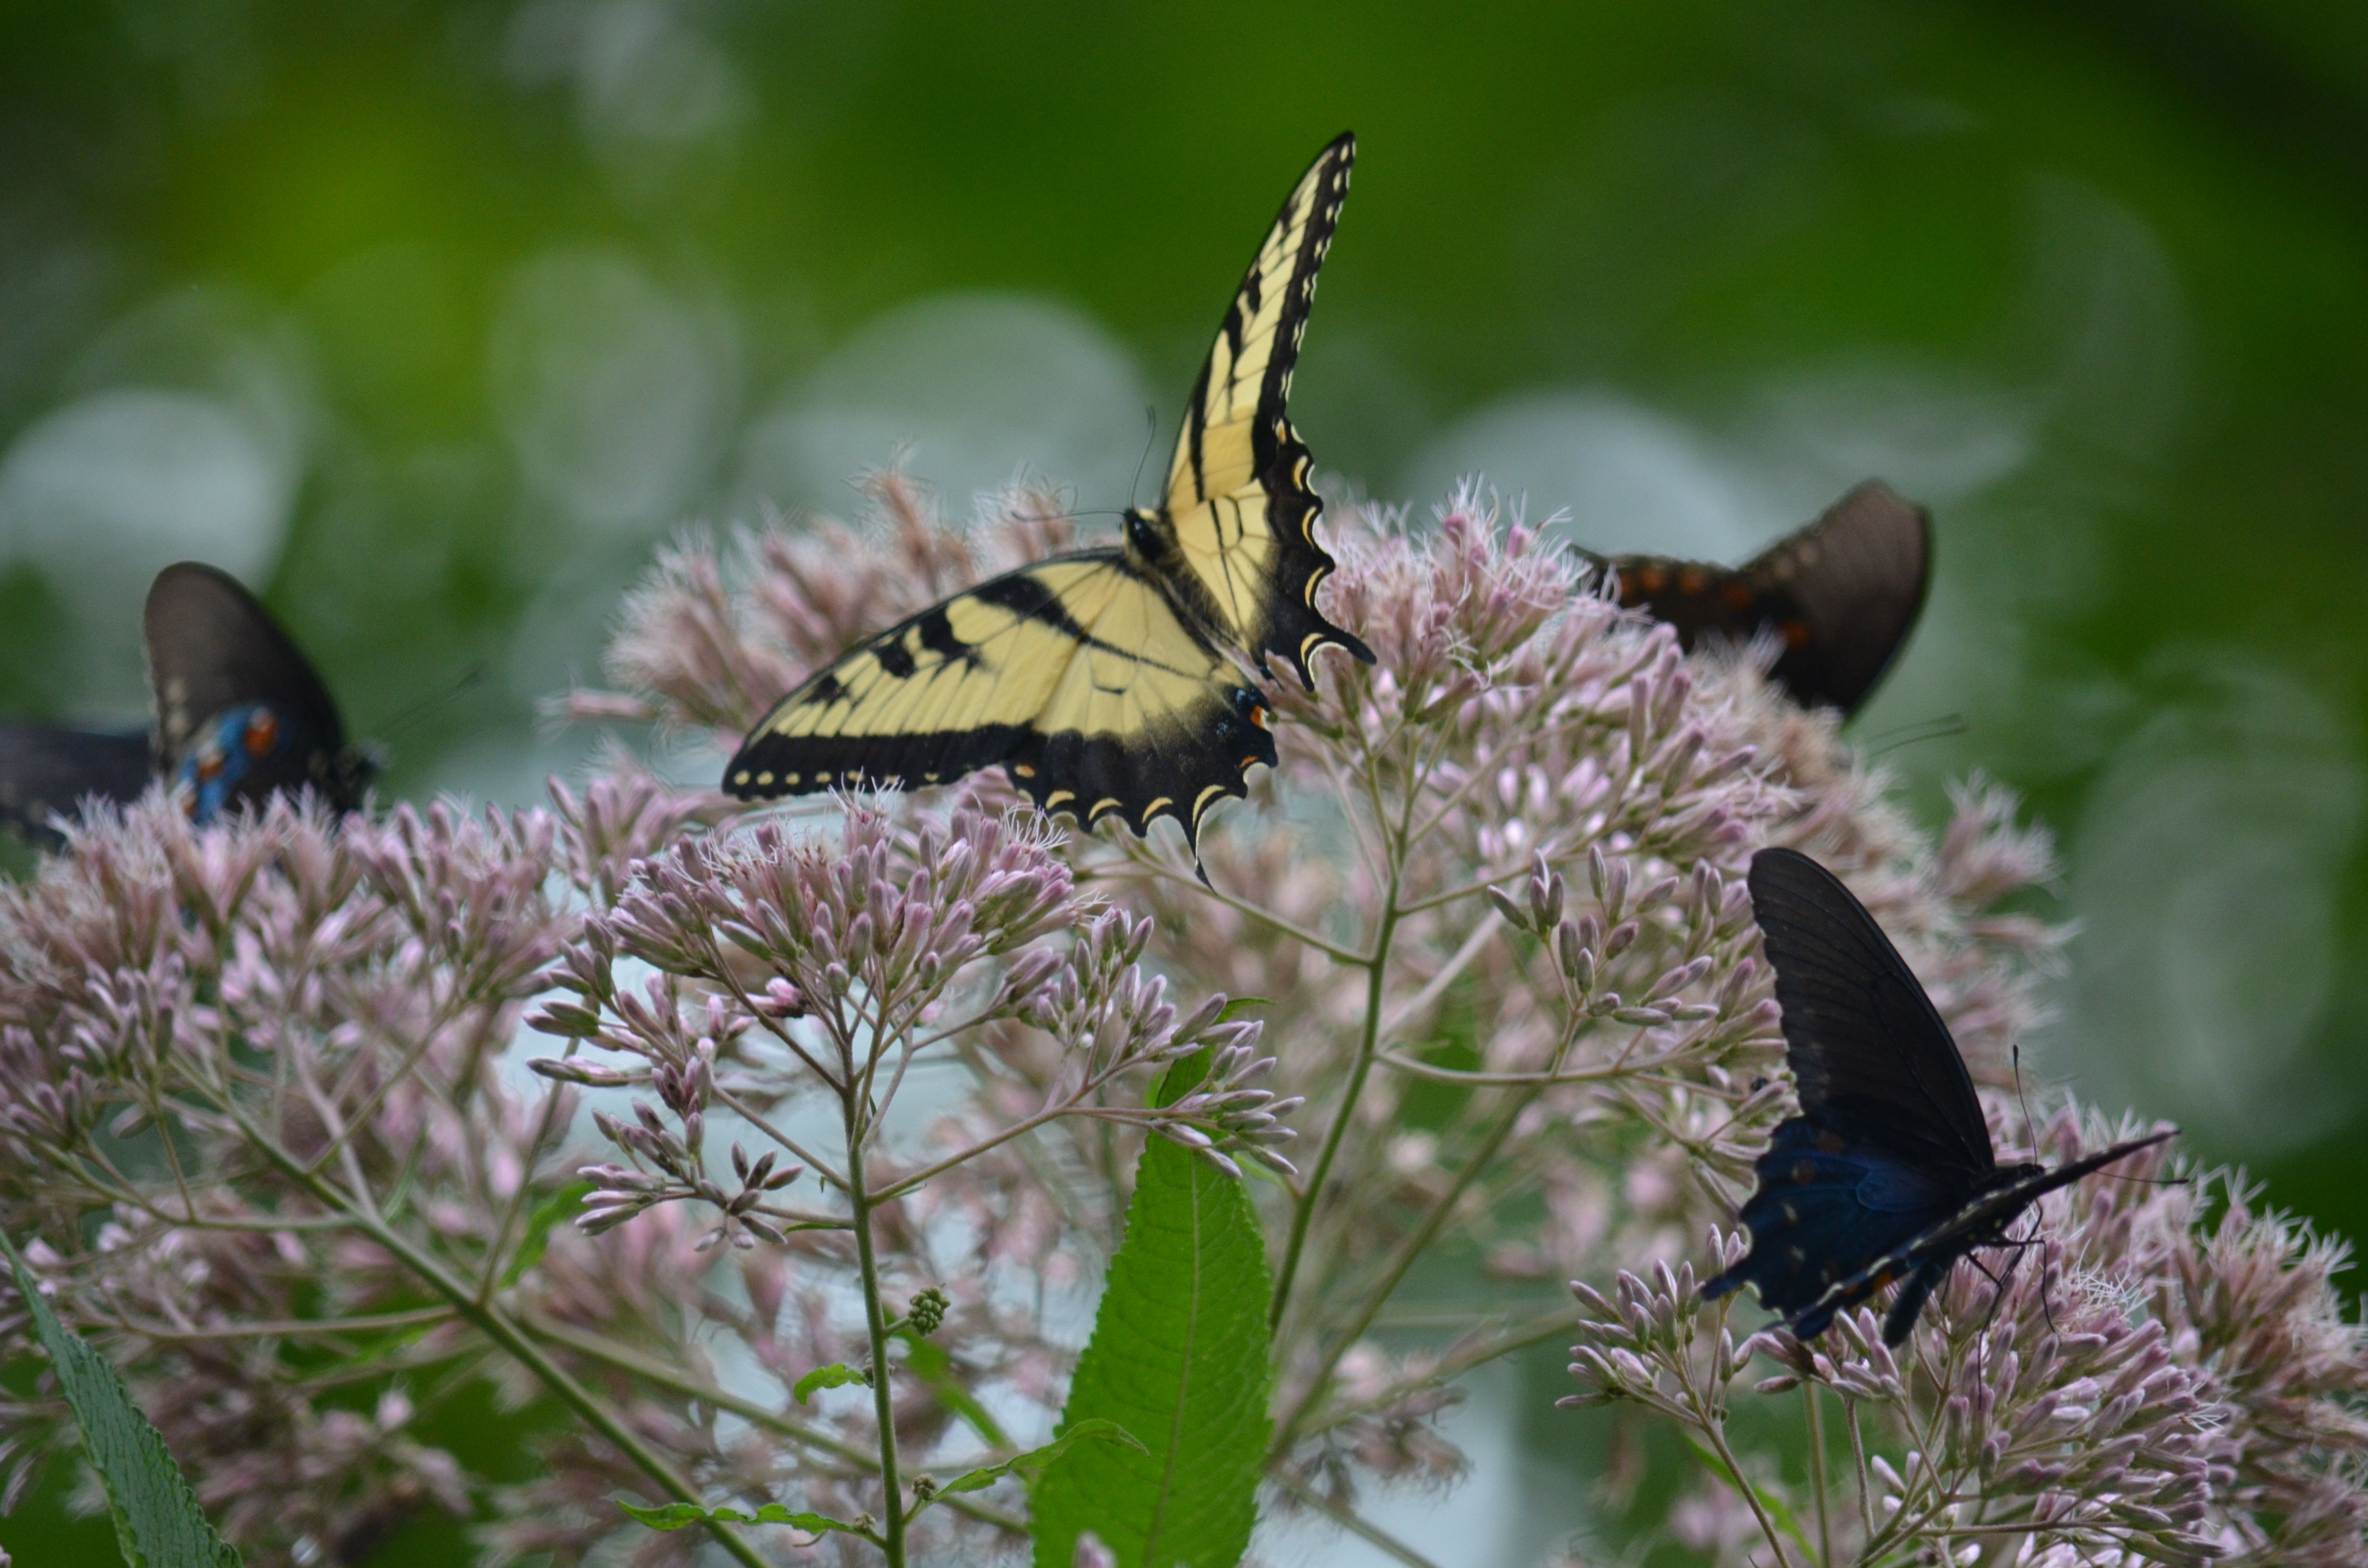 Butterflies with images my pictures animals birds